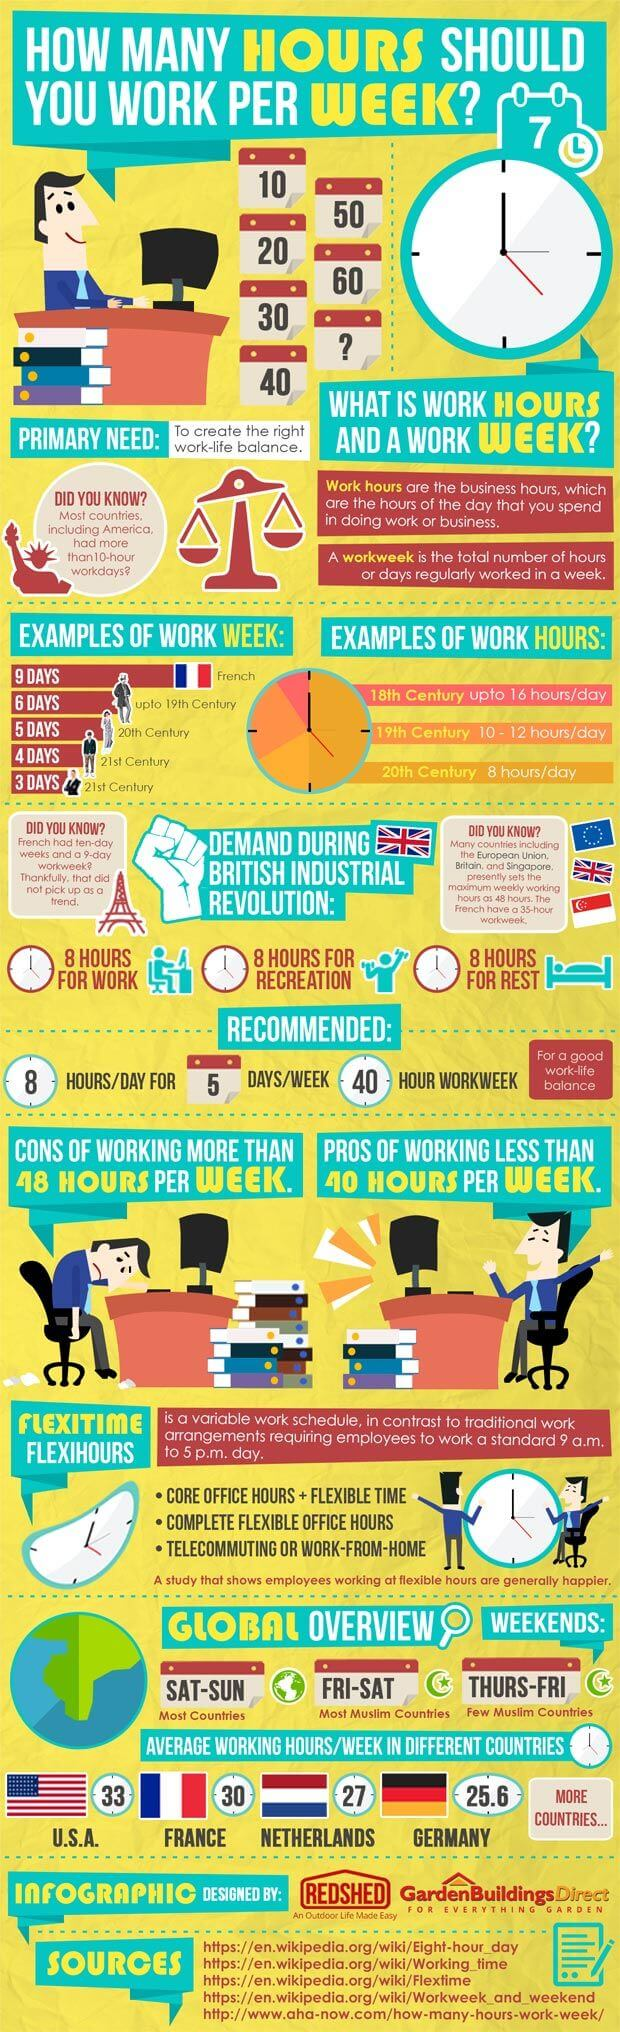 Infographic about work hours and life